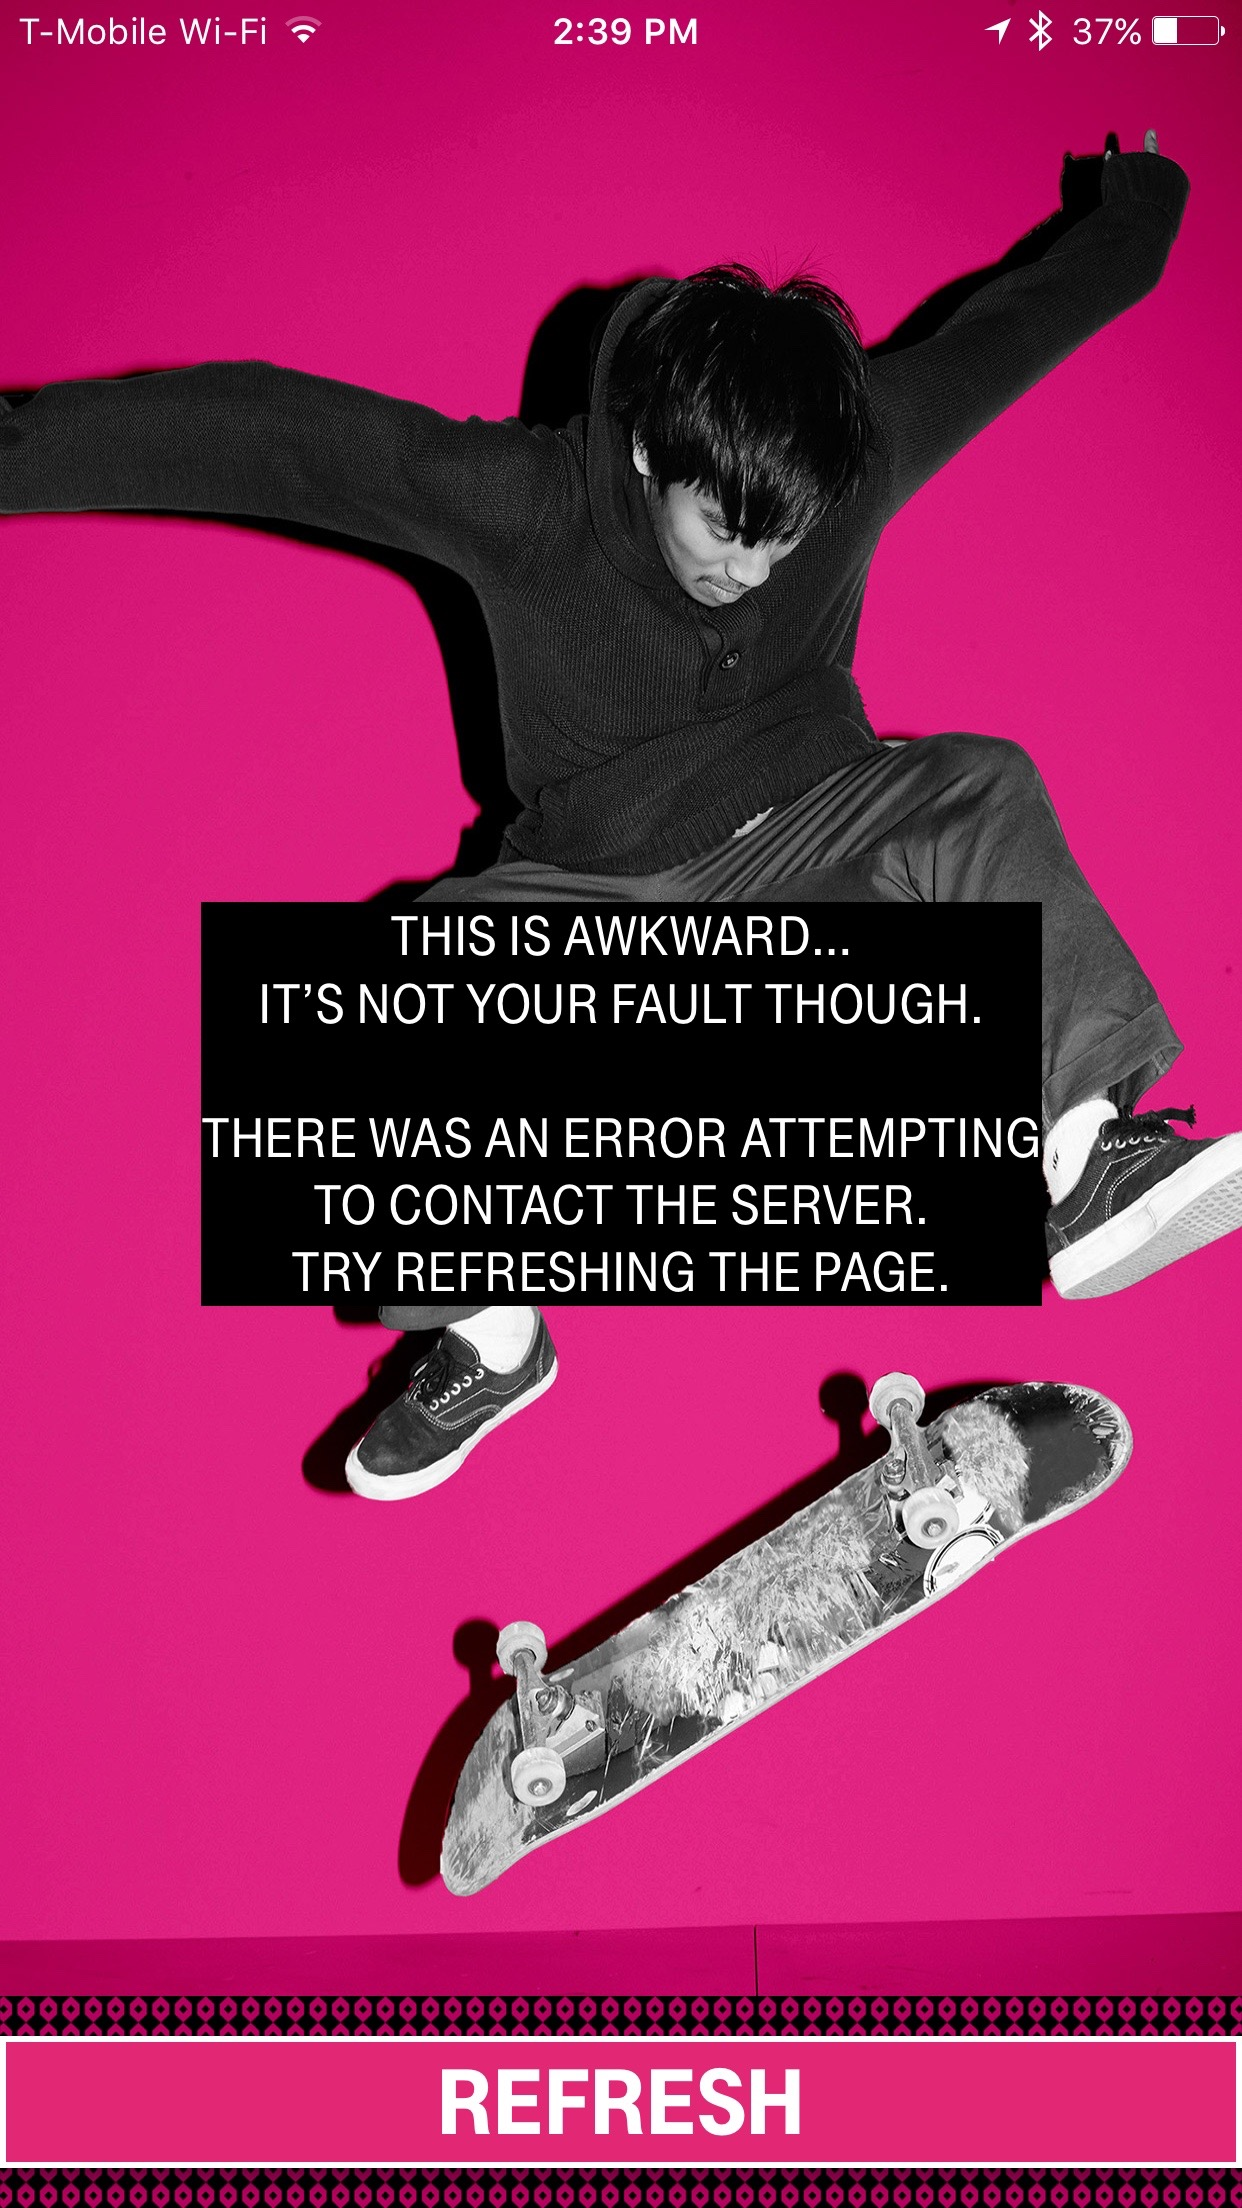 T-Mobile's Free Pizza Giveaway Marred By First Day Glitches